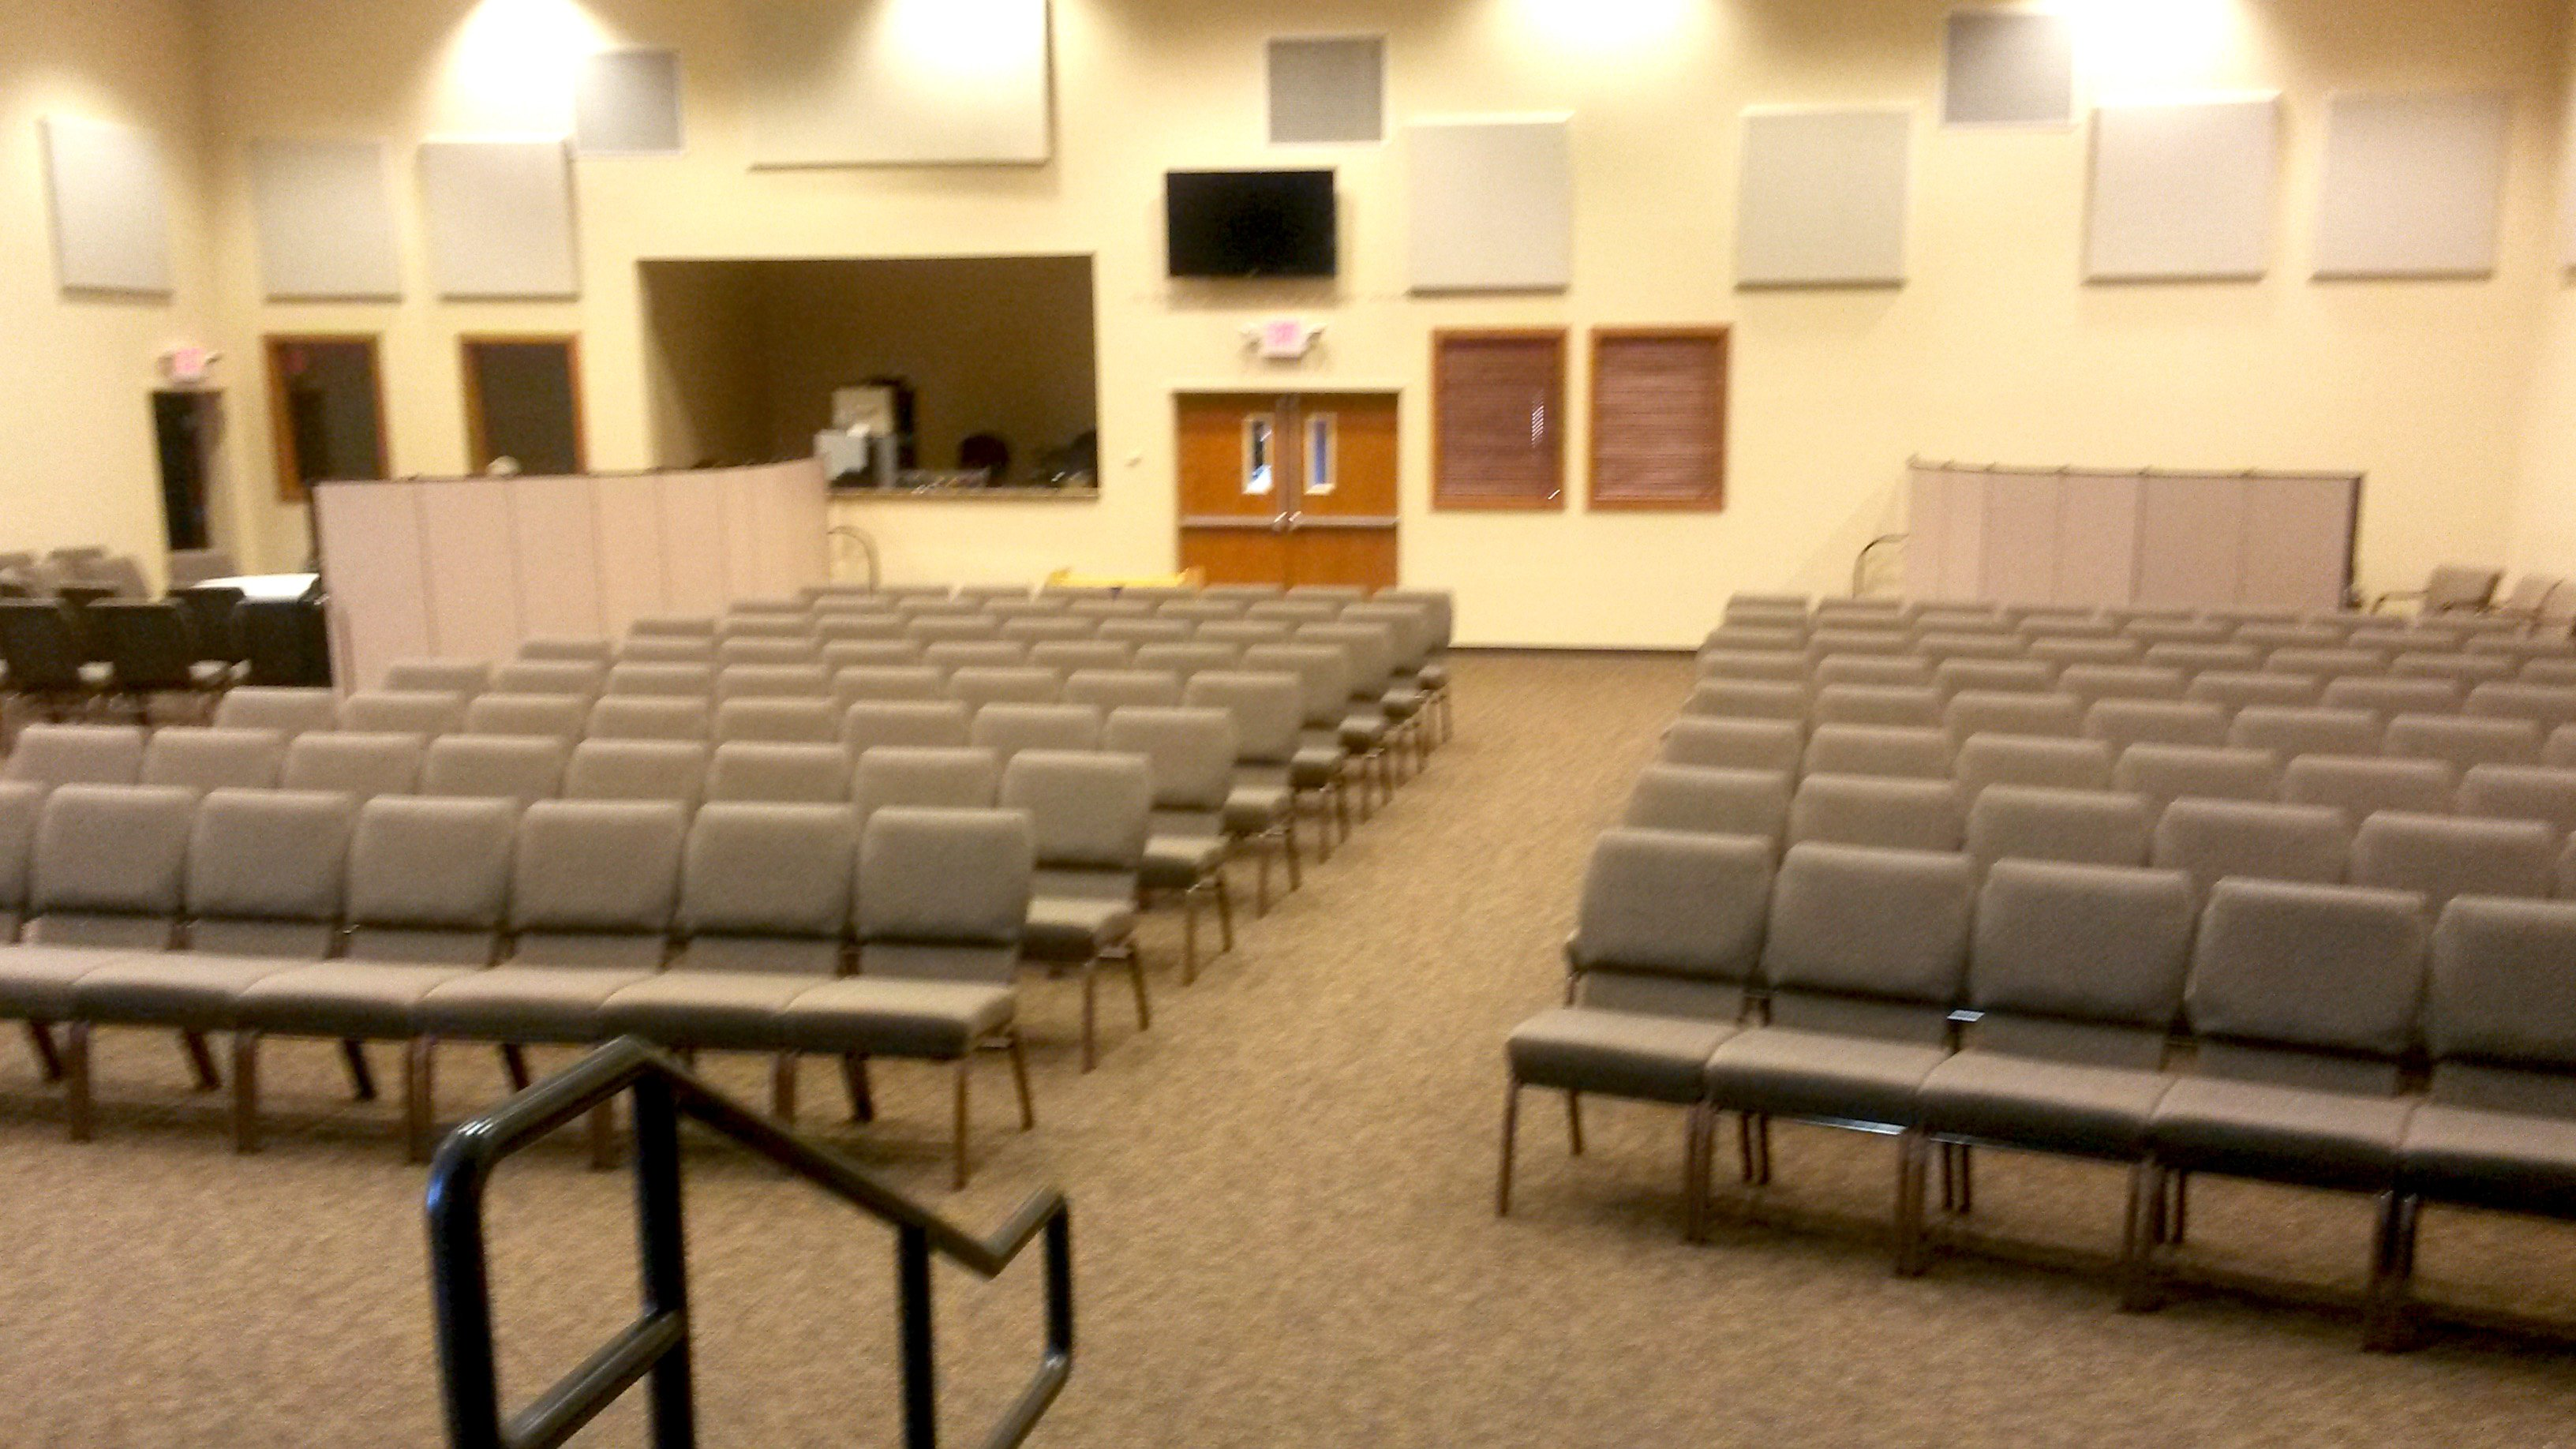 Room dividers convert a portion of the Grace Valley CRC sanctuary into smaller classrooms